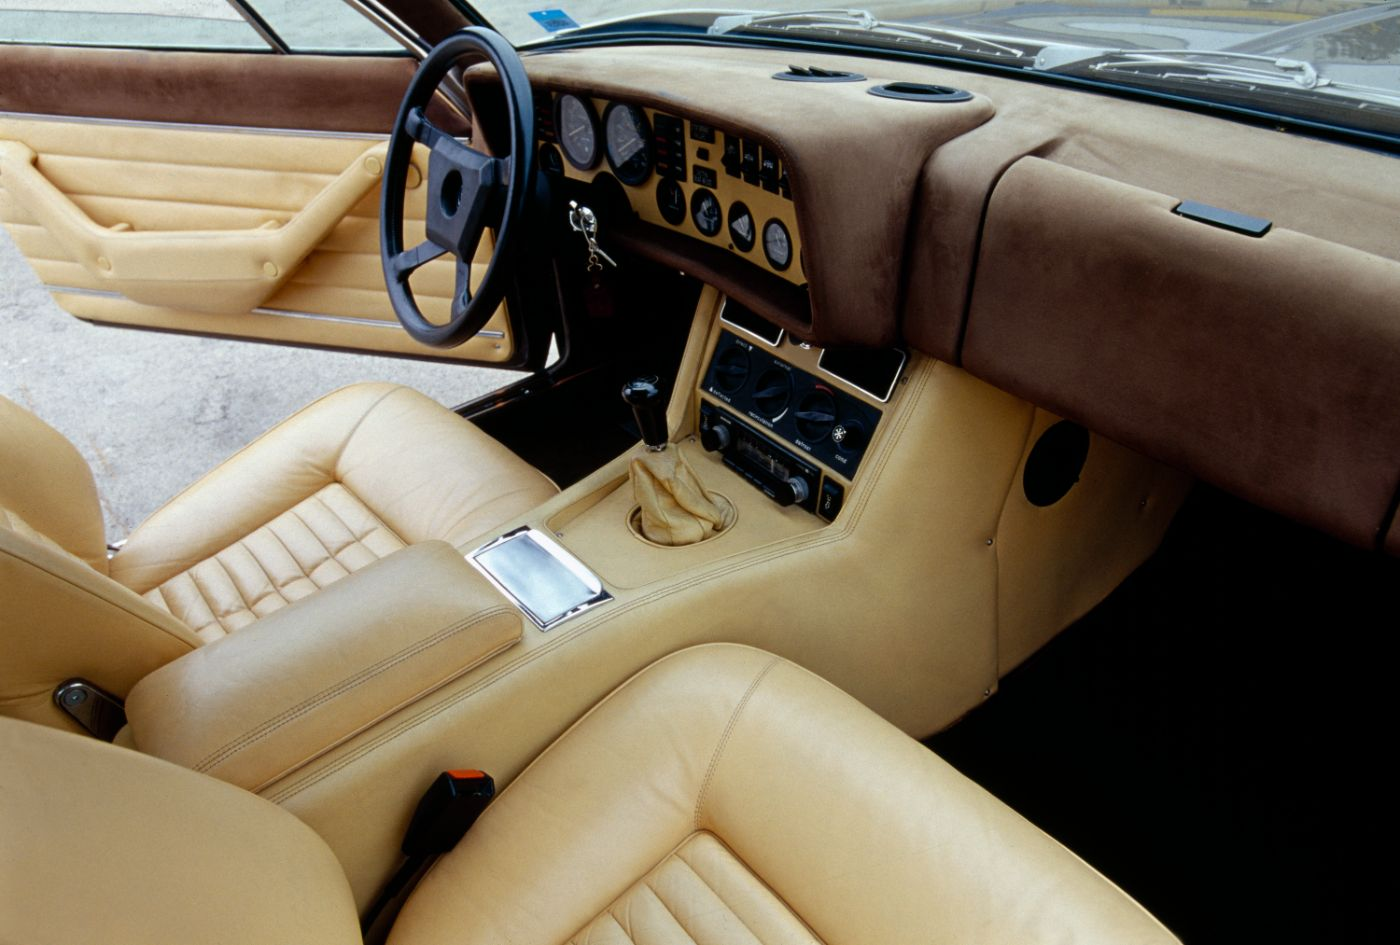 1976 Maserati Kyalami - interior view of the classic sports car model